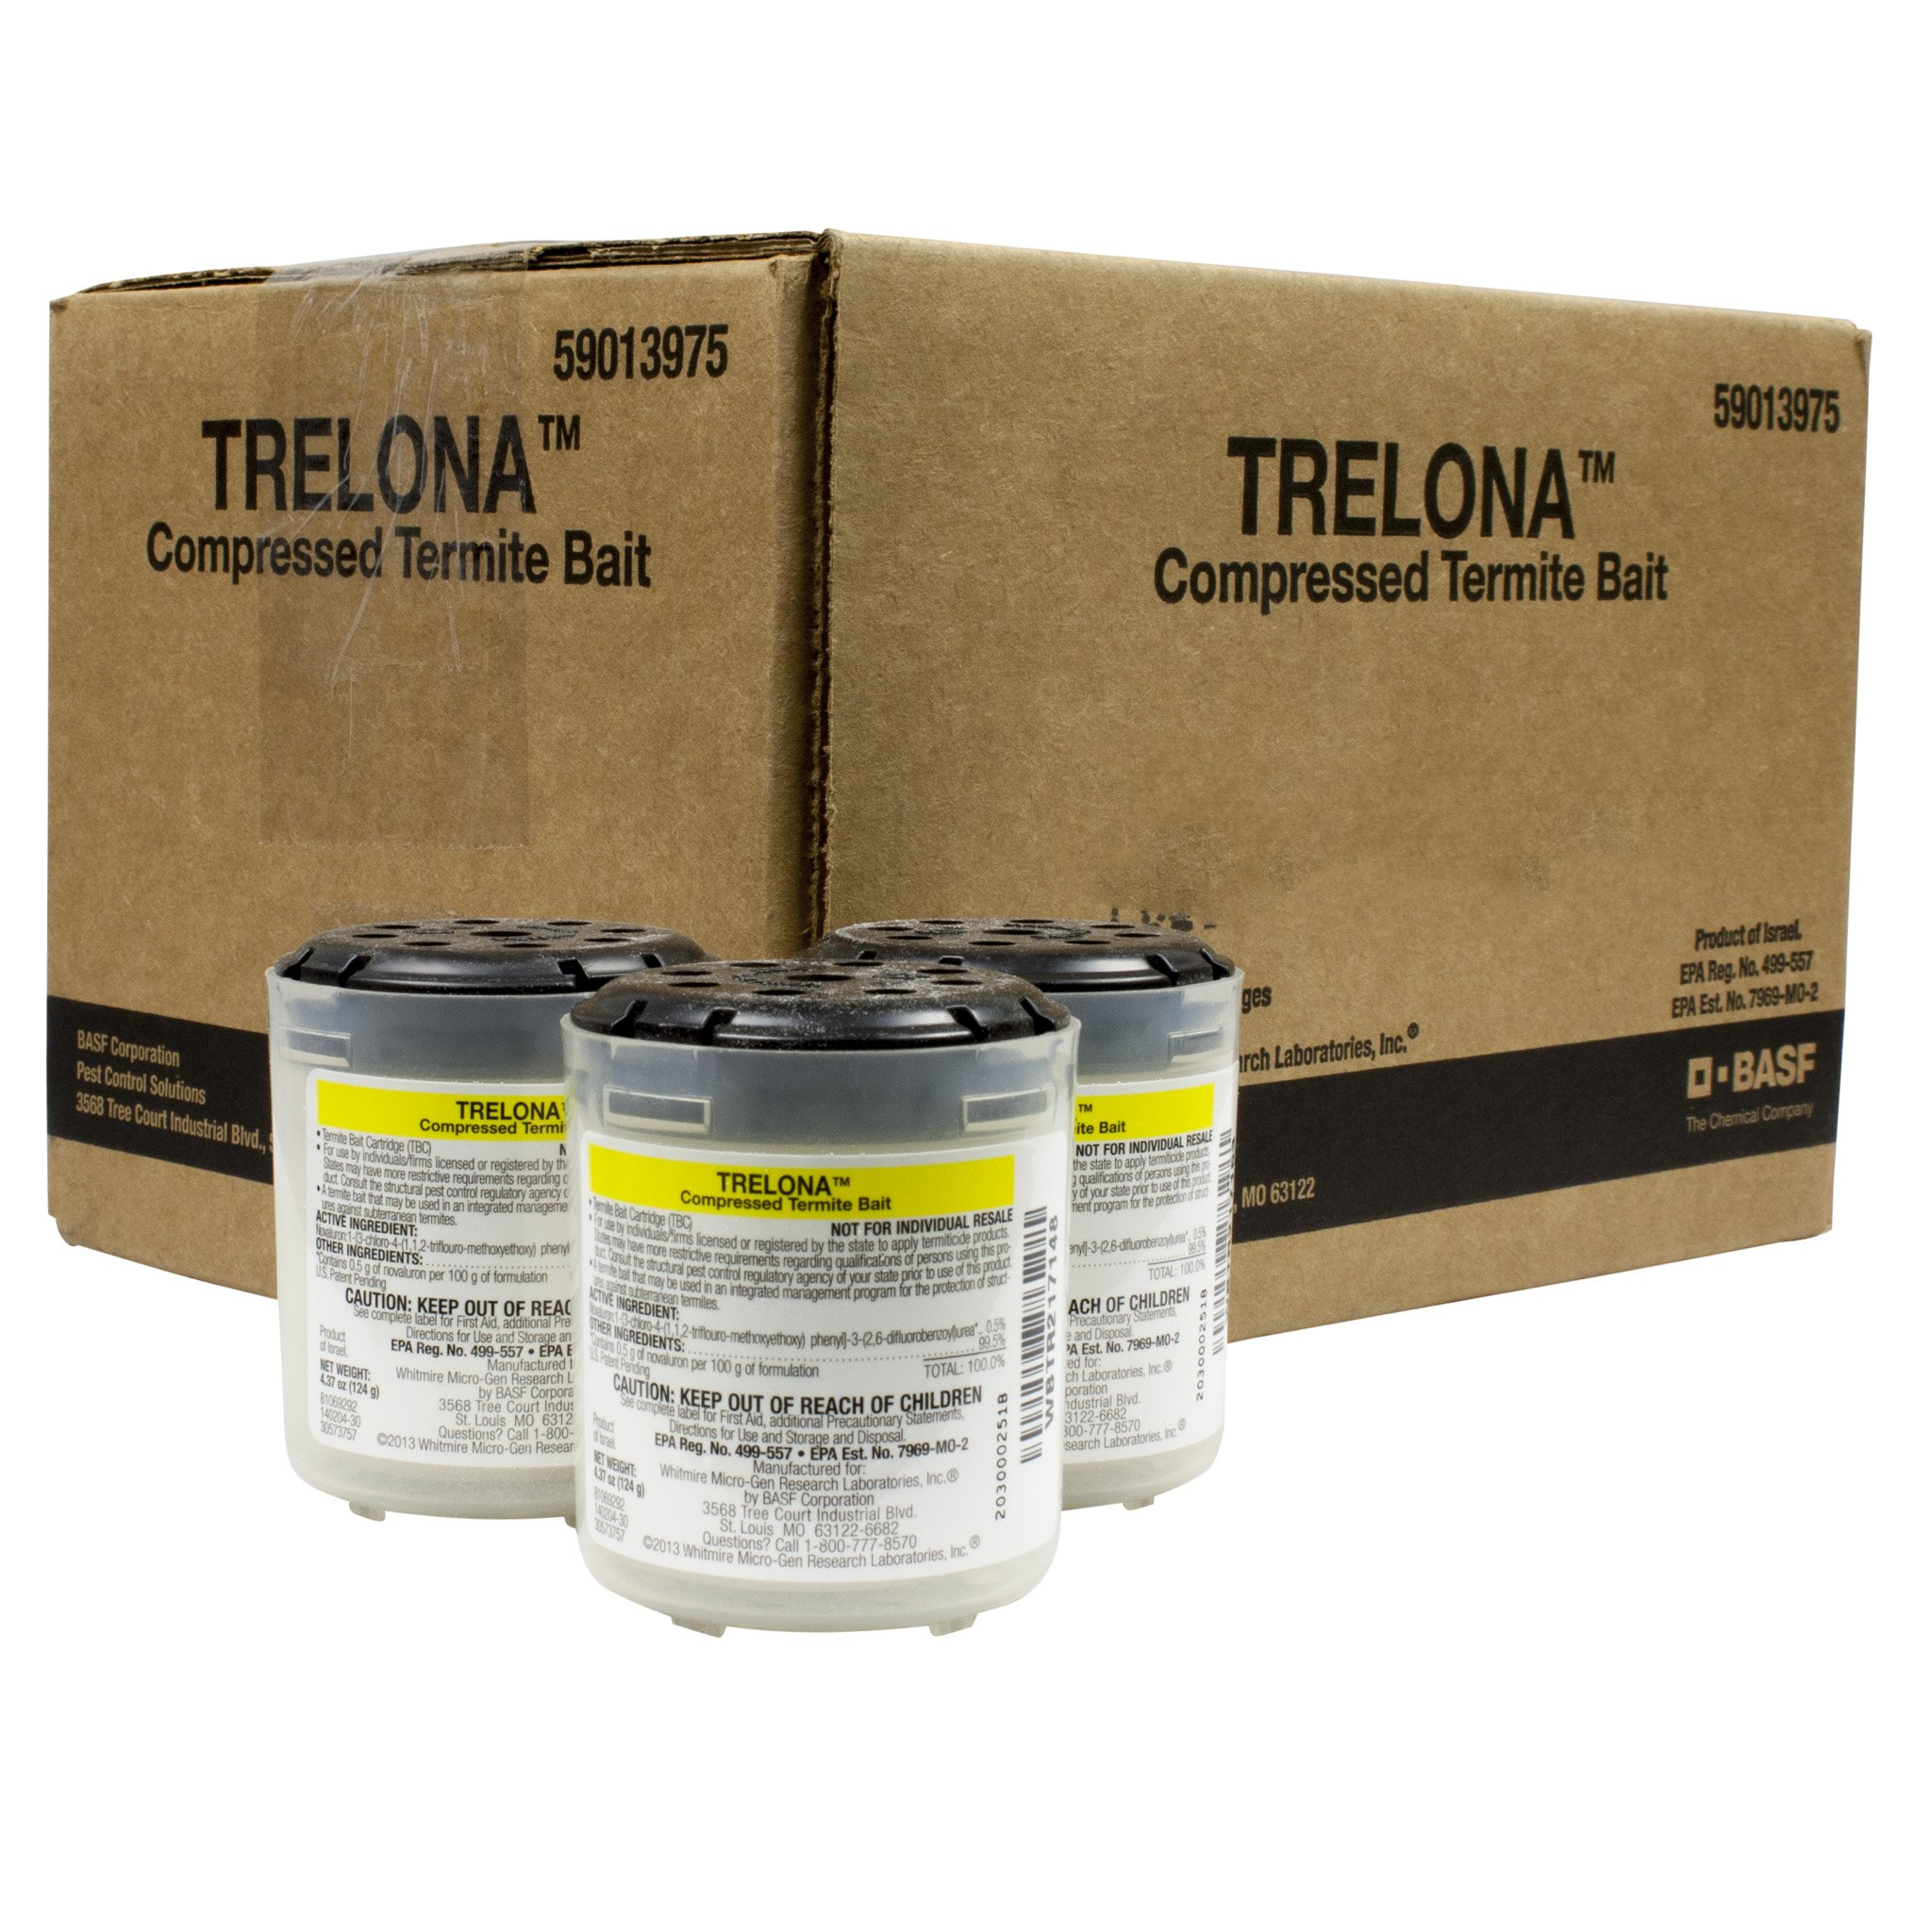 Trelona - CASE 24 BAIT CARTRIDGES